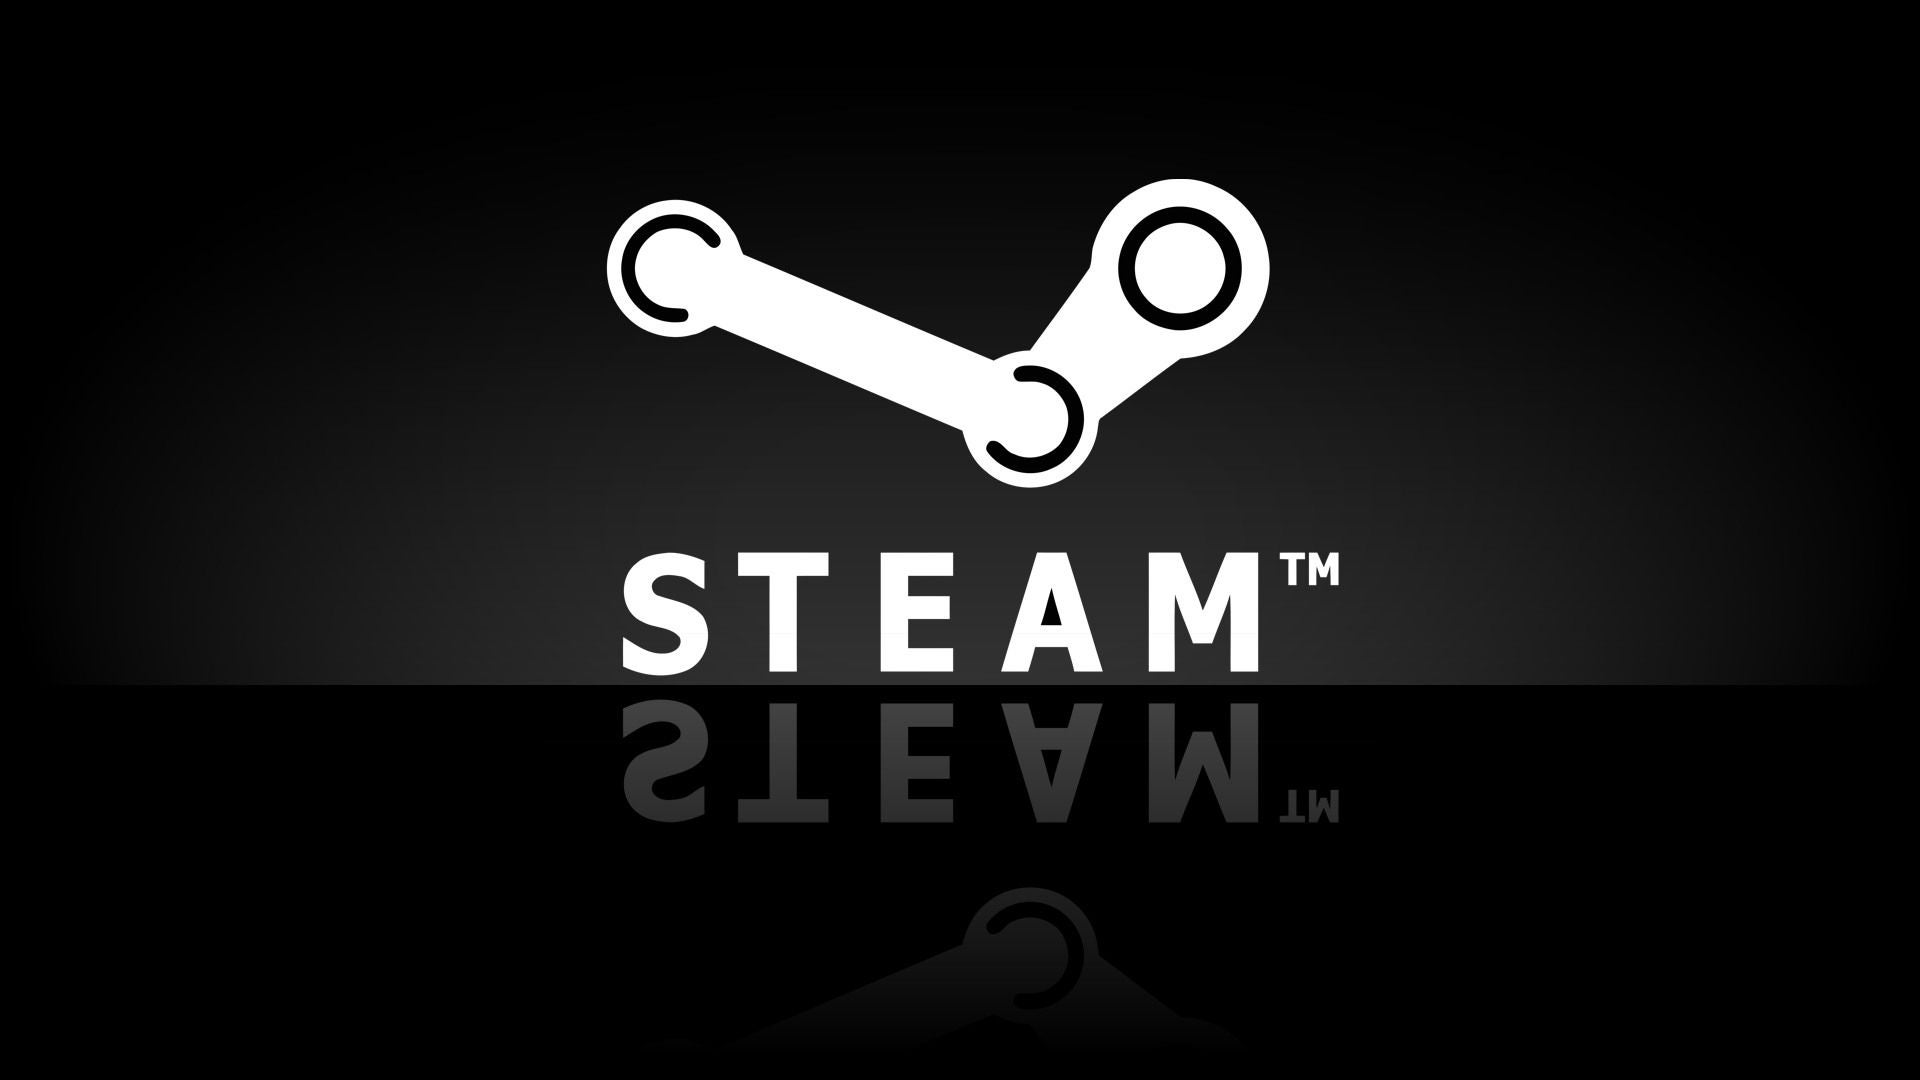 The Steam Exploit That Let You Get Free Keys For Any Game